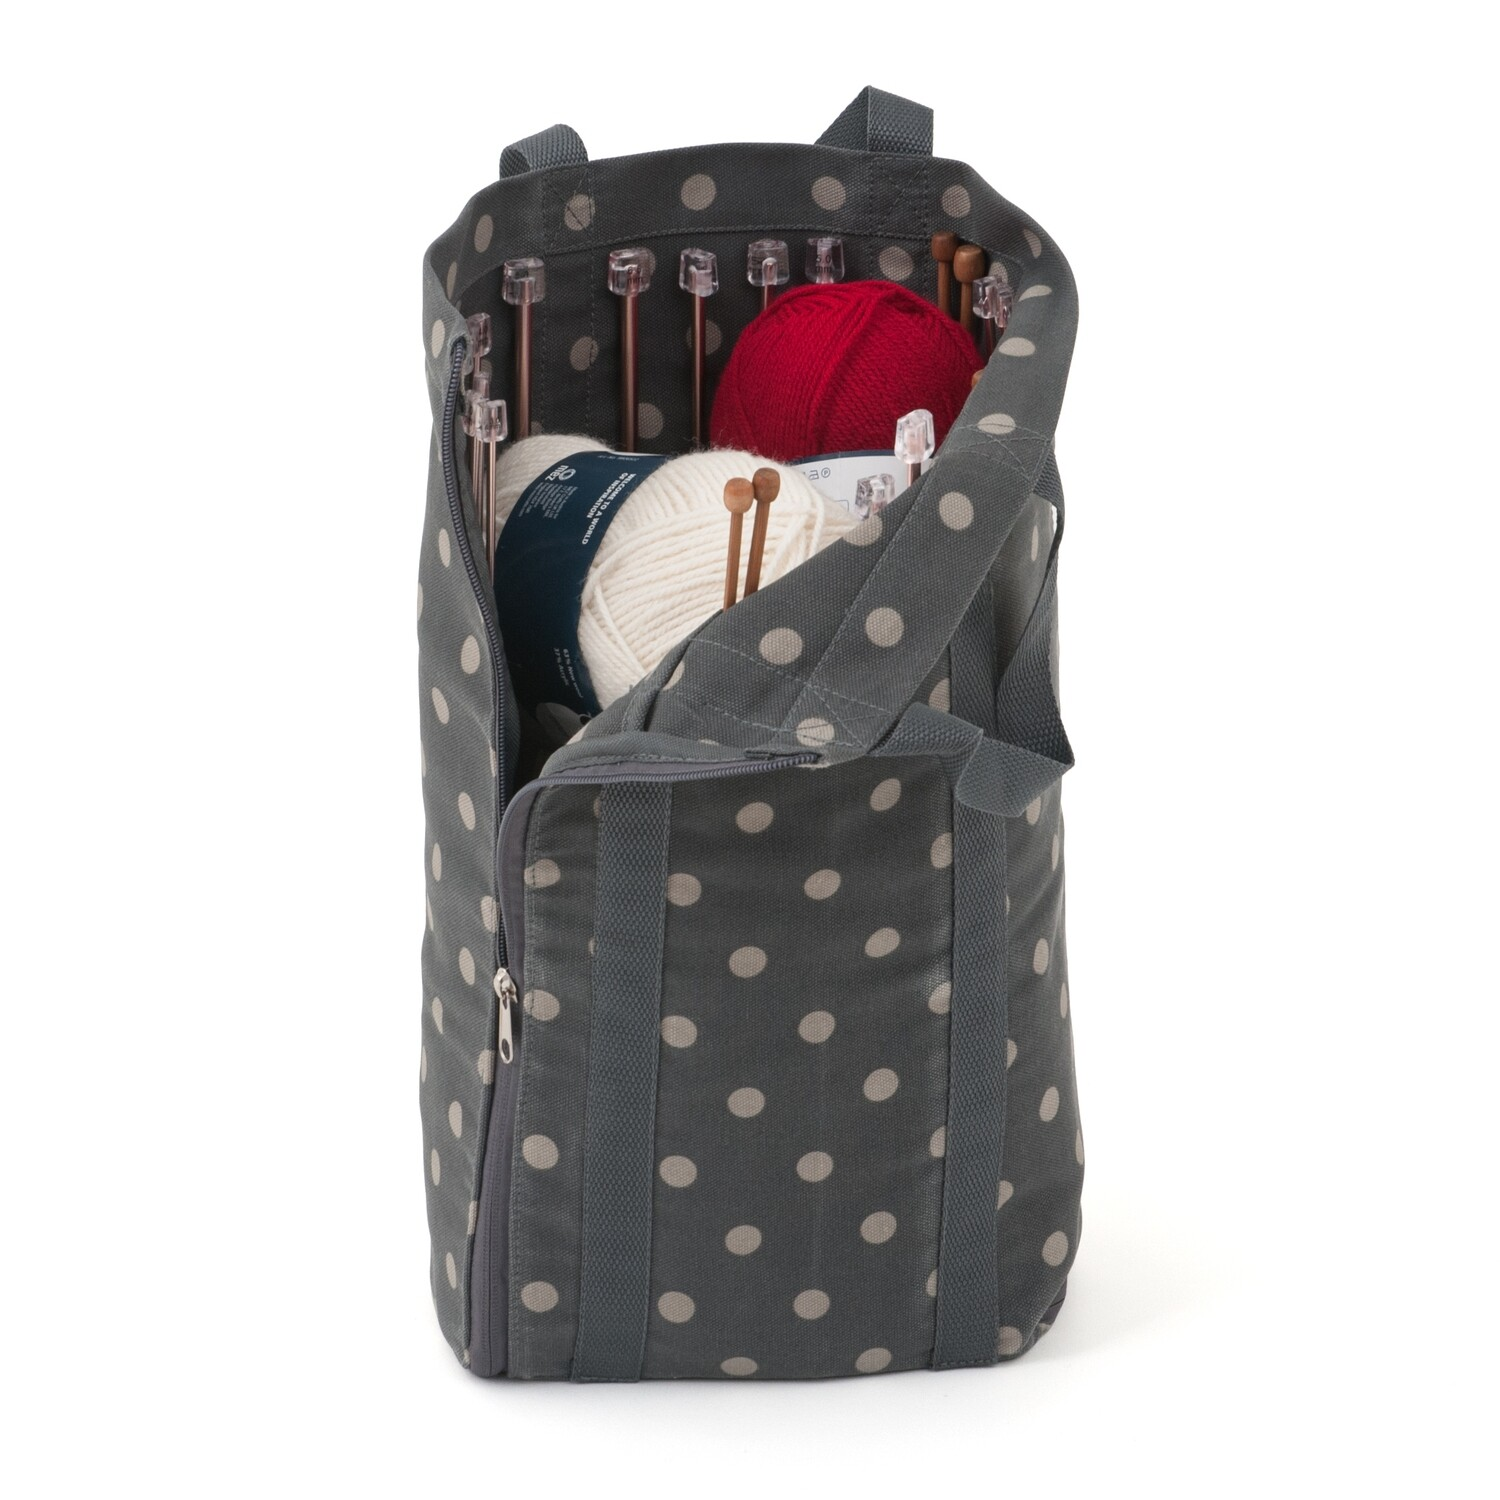 Knit Bag with Pin Storage - Charcoal Spot